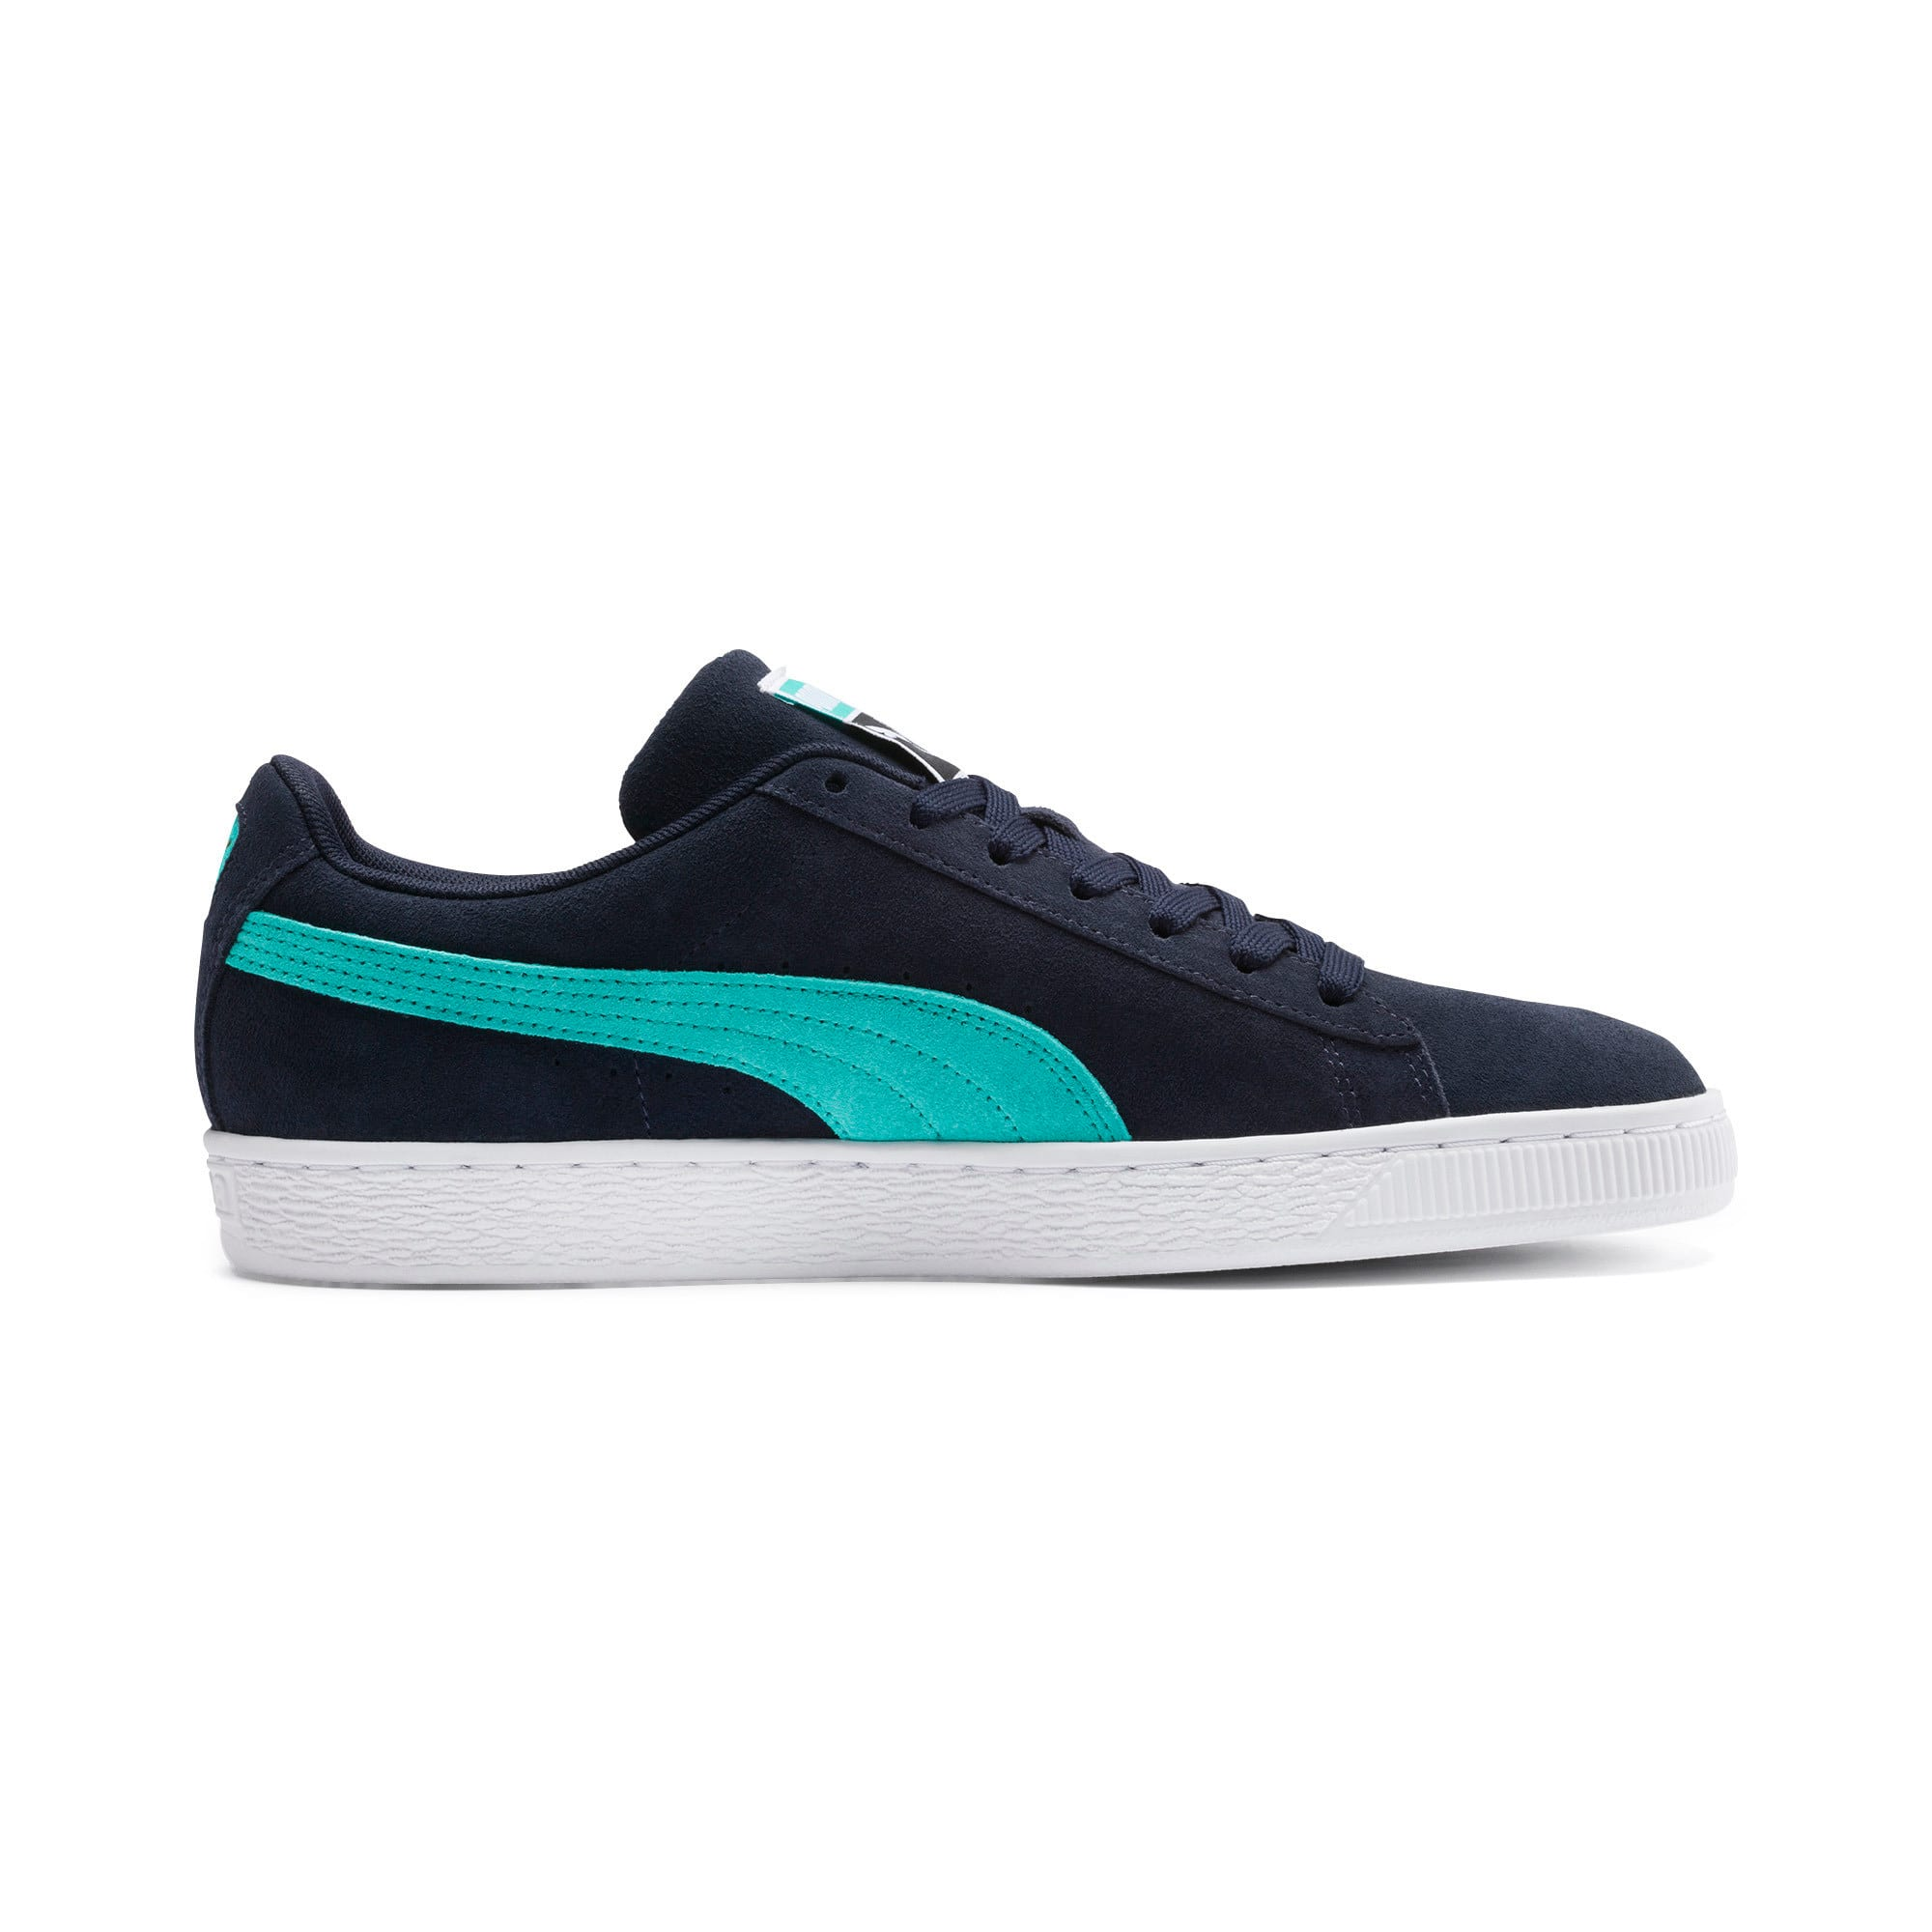 Thumbnail 6 of Suede Classic Sneakers, Peacoat-Blue Turquoise-P Wht, medium